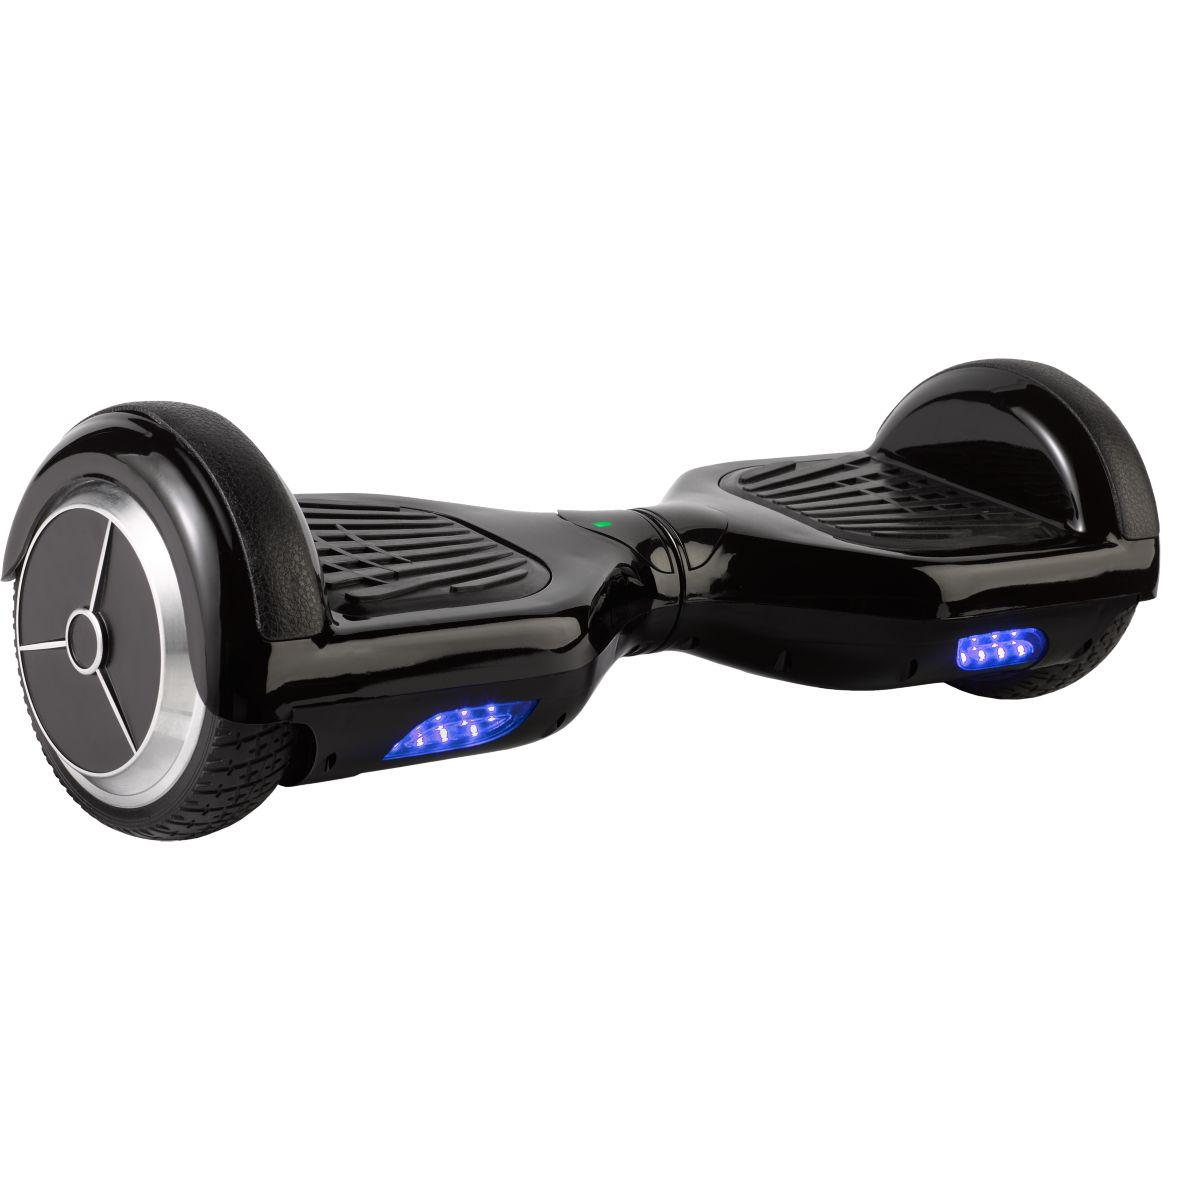 Hoverboard mp man ov15 black - 5% de remise imm�diate avec le code : priv5 (photo)